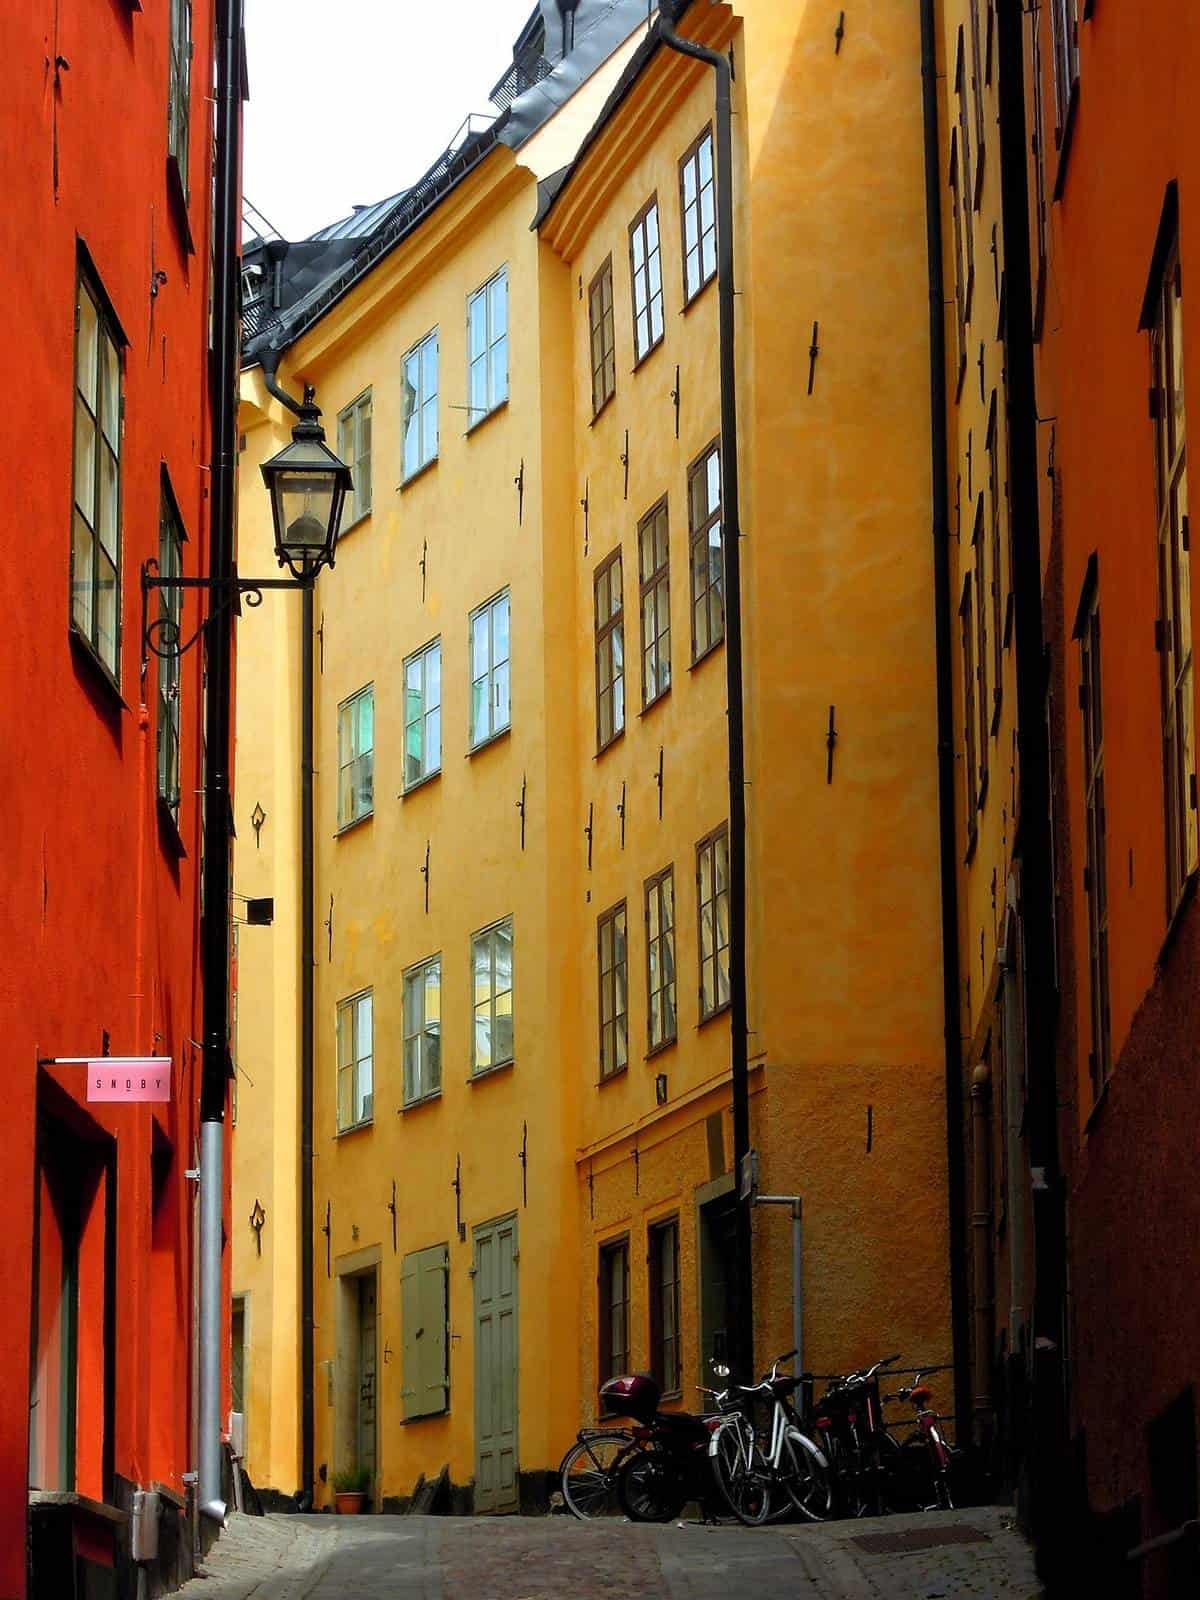 Trips to Stockholm is not complete without getting lost in Gamla Stadn